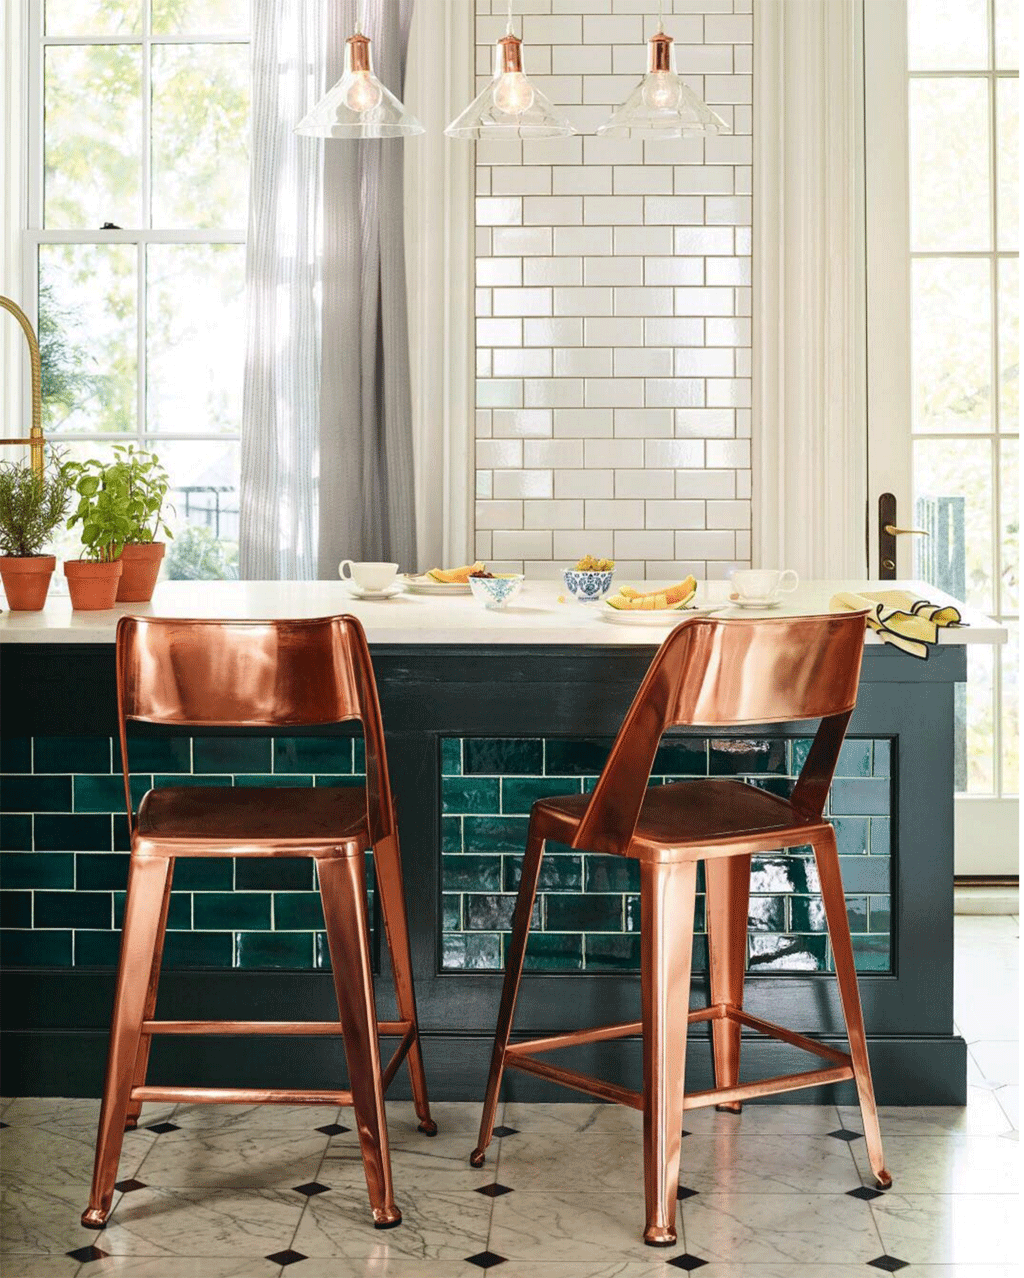 Teal and copper kitchen by Mercury Mosaics